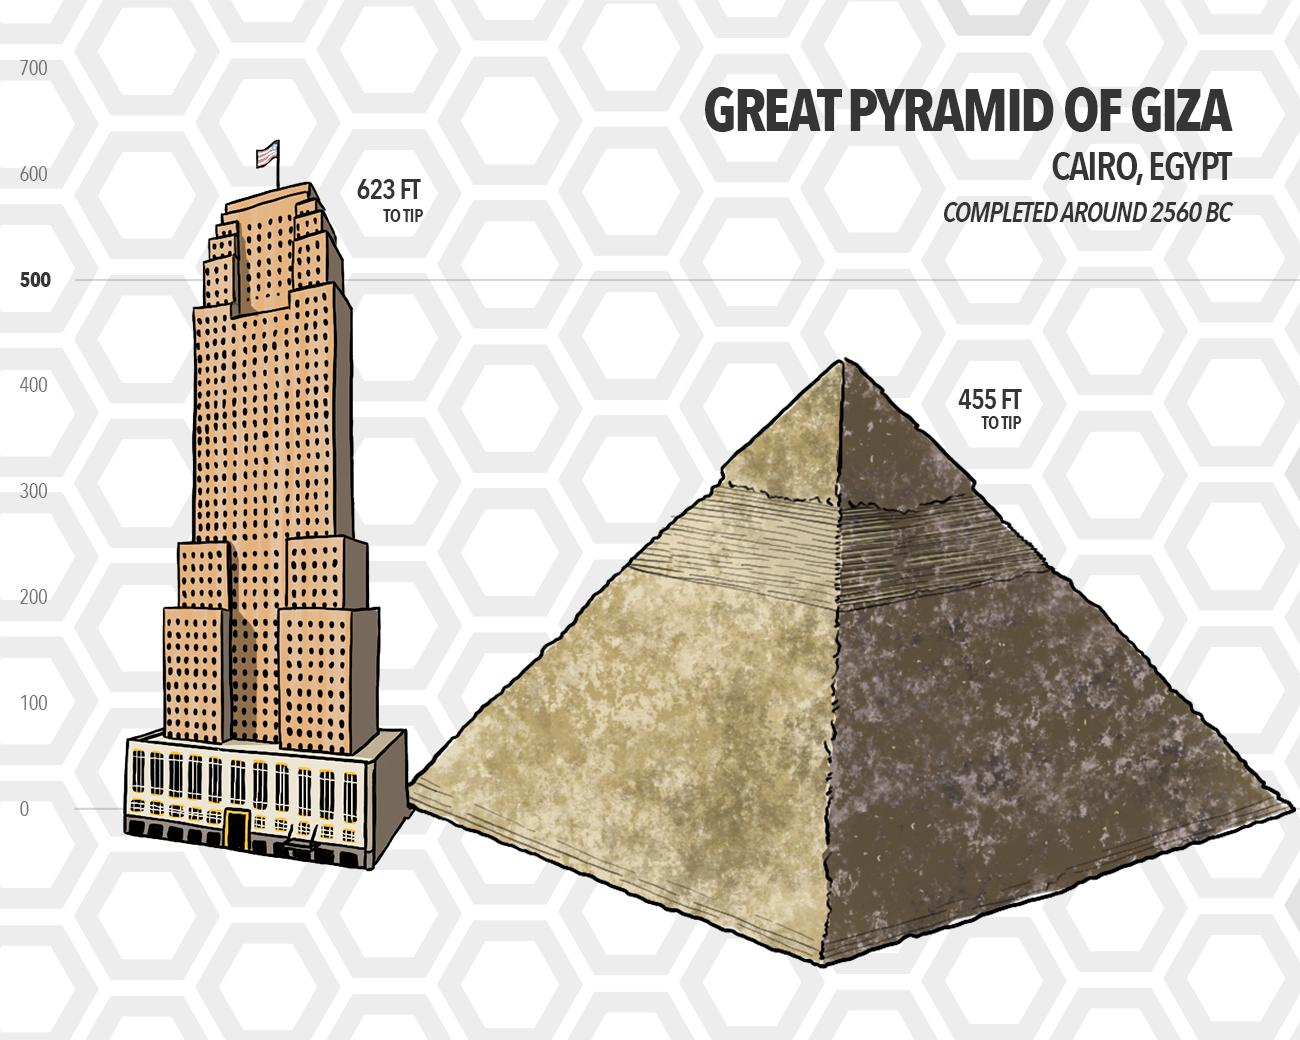 Built over 4,000 years before Carew Tower, the Great Pyramid of Giza in Cairo, Egypt stands a total of 455 feet tall. It is around 168 feet shorter than Carew Tower. (Source: Google) / Image: Phil Armstrong // Published: 5.15.19